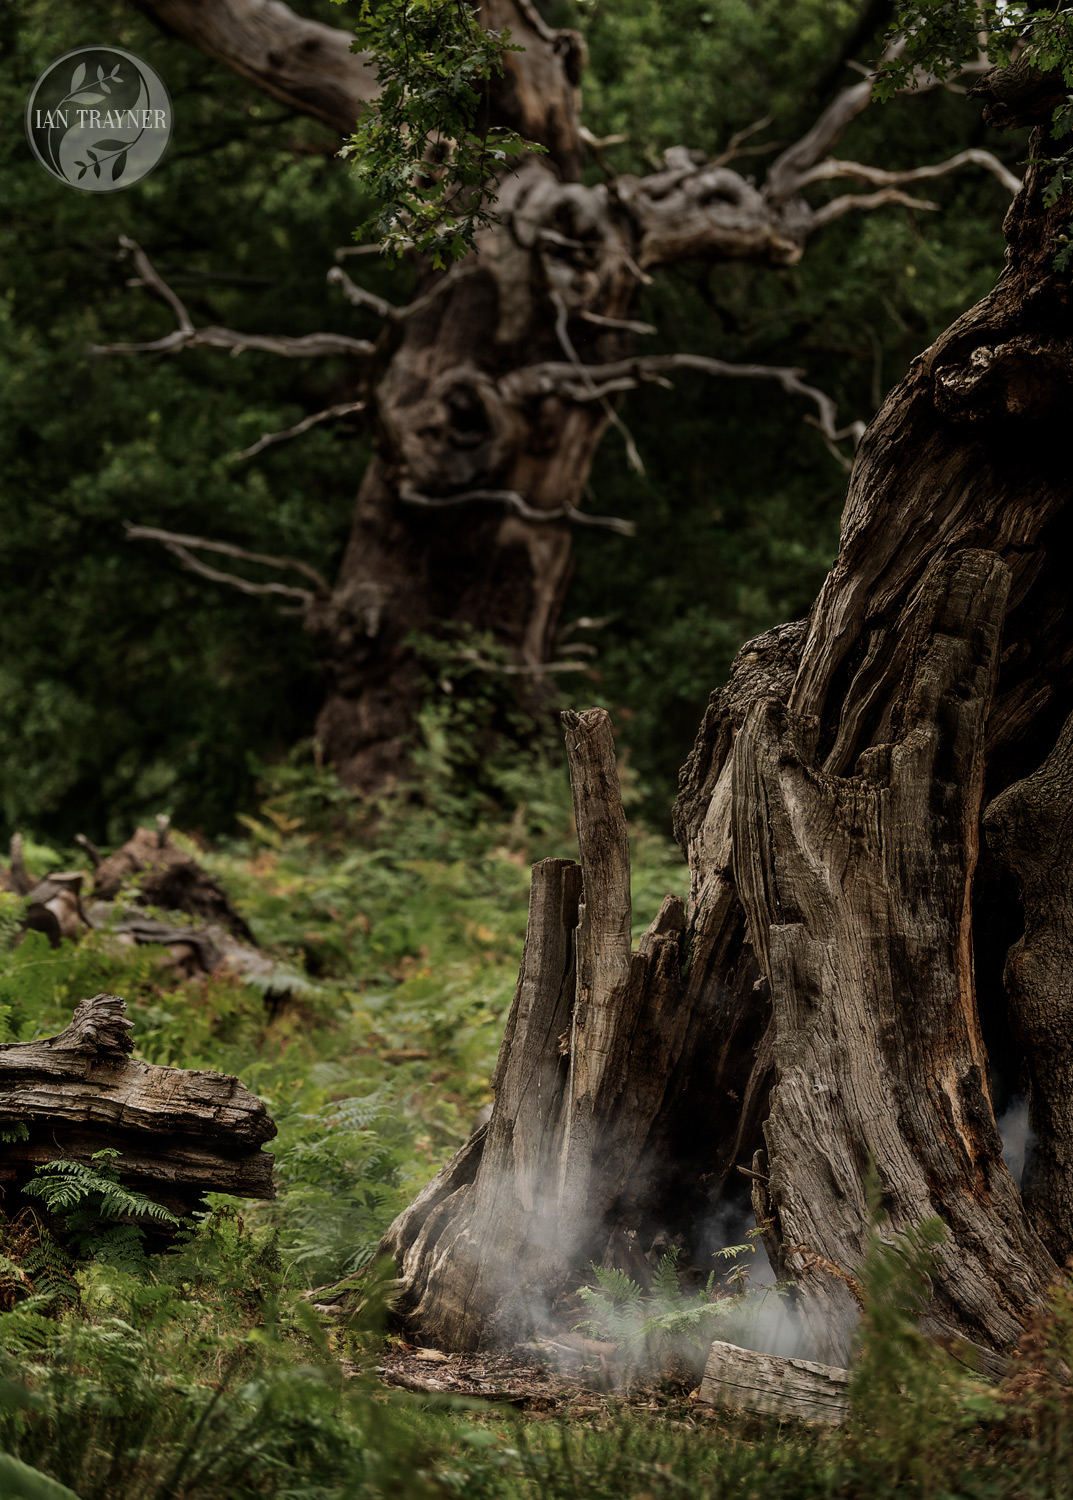 In the forest at dusk, mist or smoke rises from the base of a hollow tree